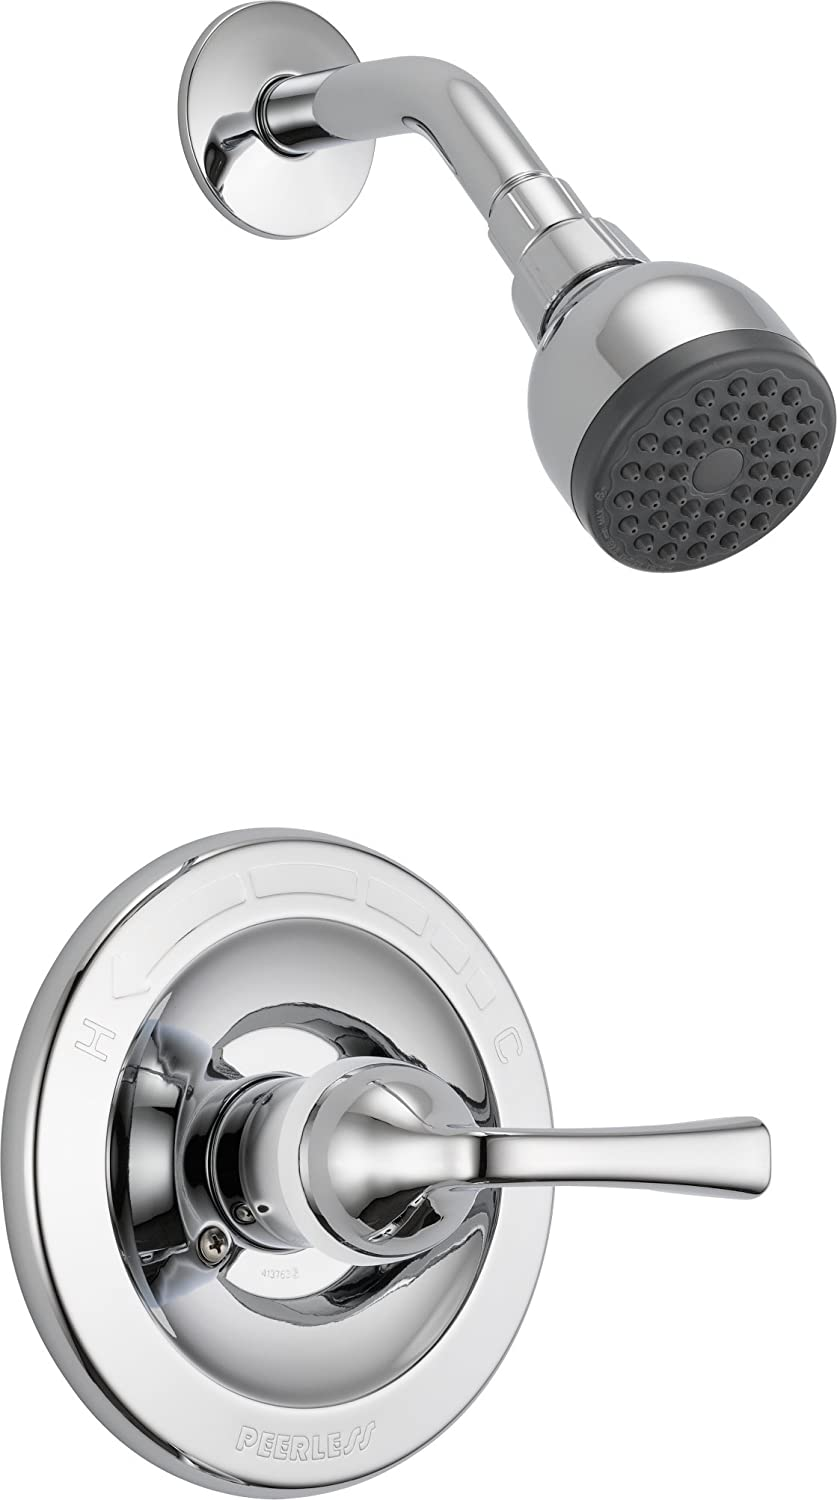 delta faucet b112900 foundations coreb core b series tub and shower trim with foundations roughin chrome bathtub and showerhead faucet systems